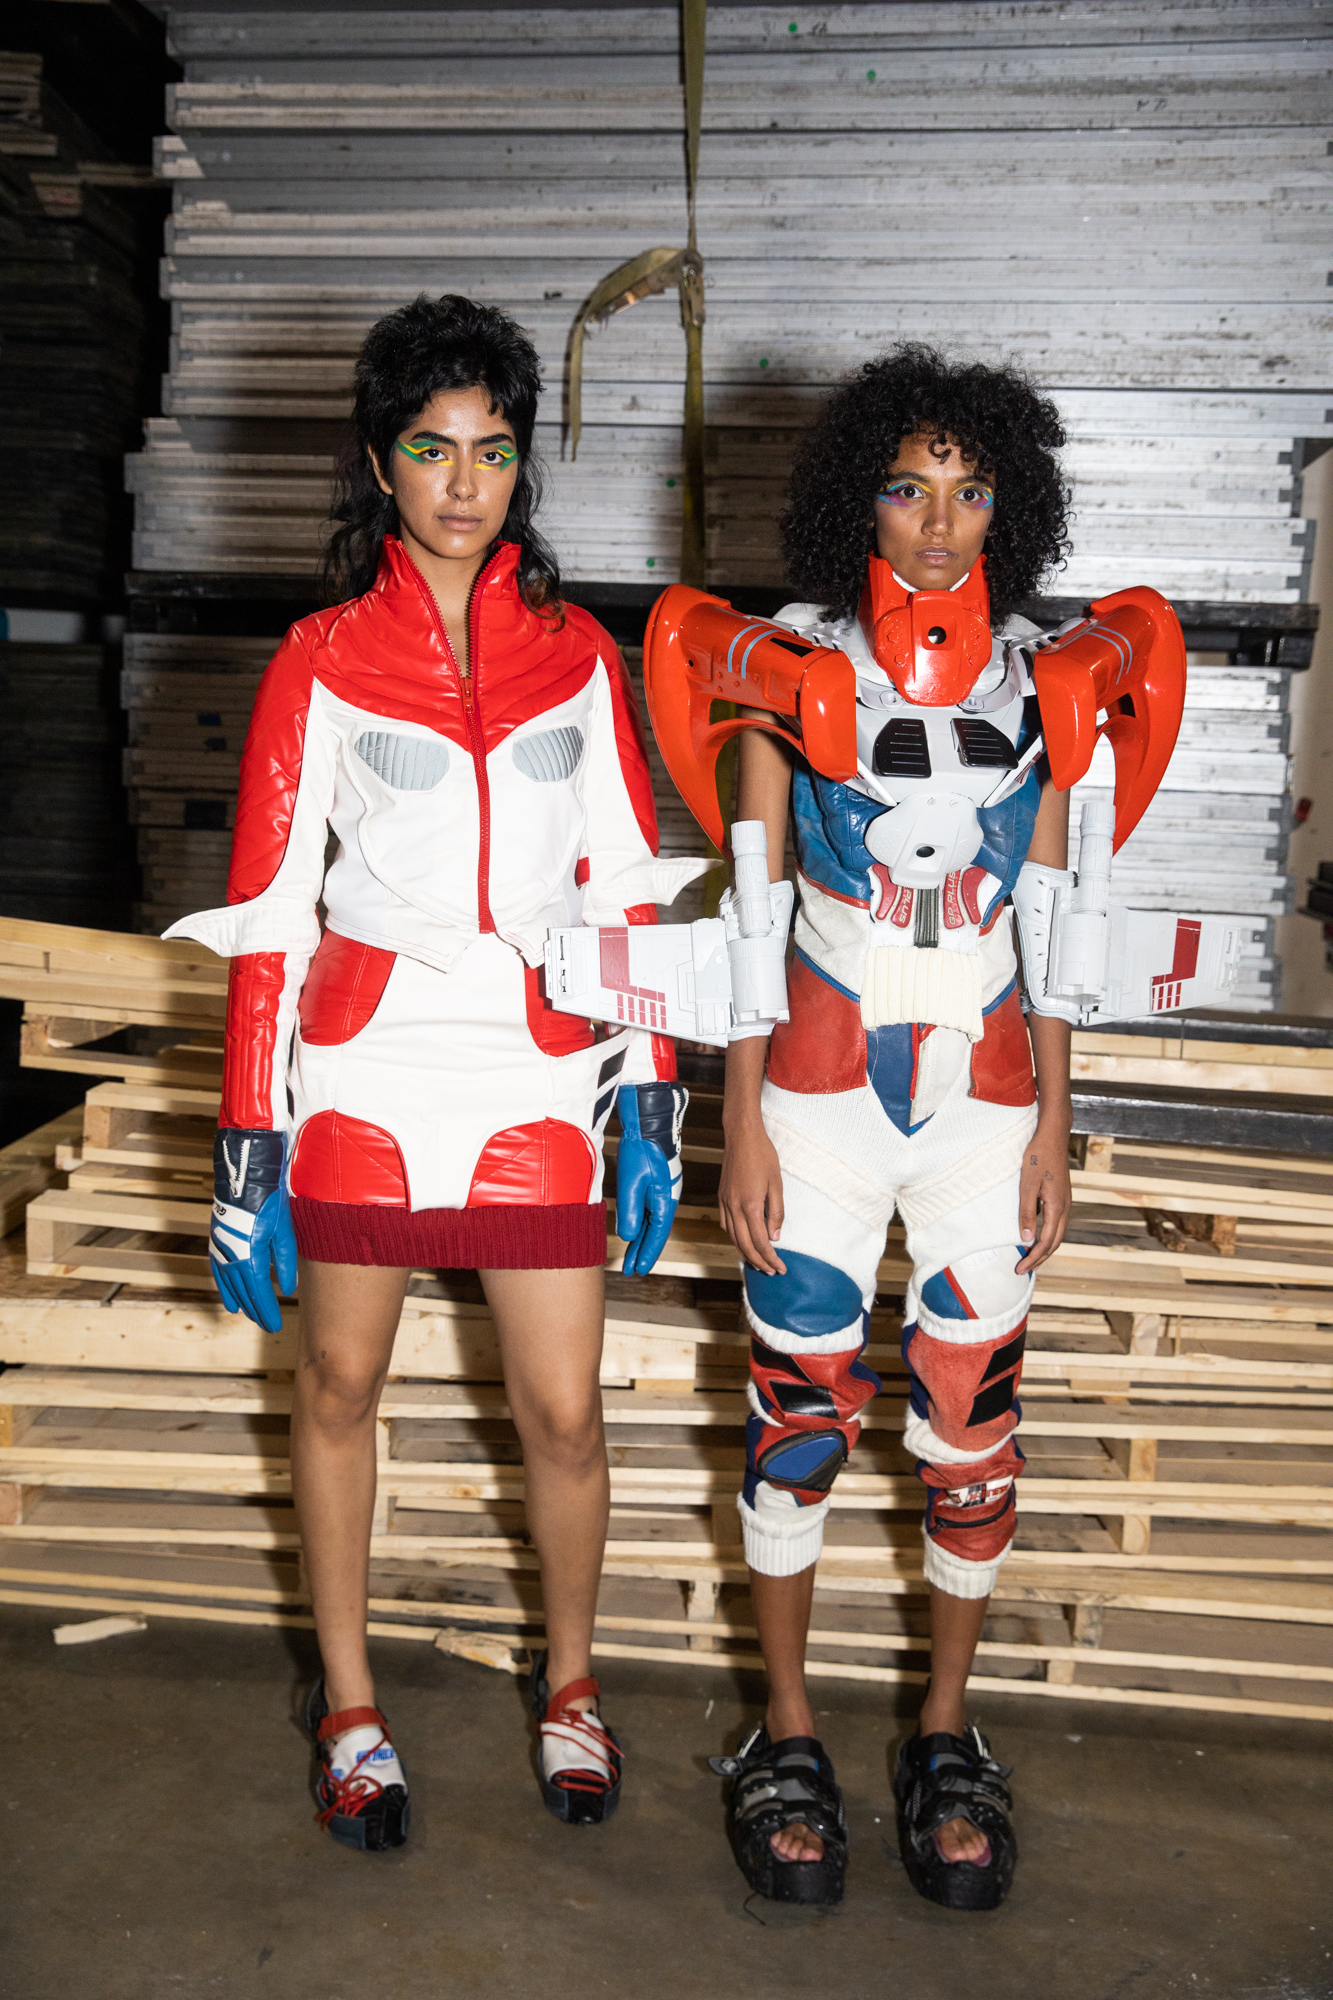 Pierre-Louis Auvray NYFW SS20 two models spacesuit